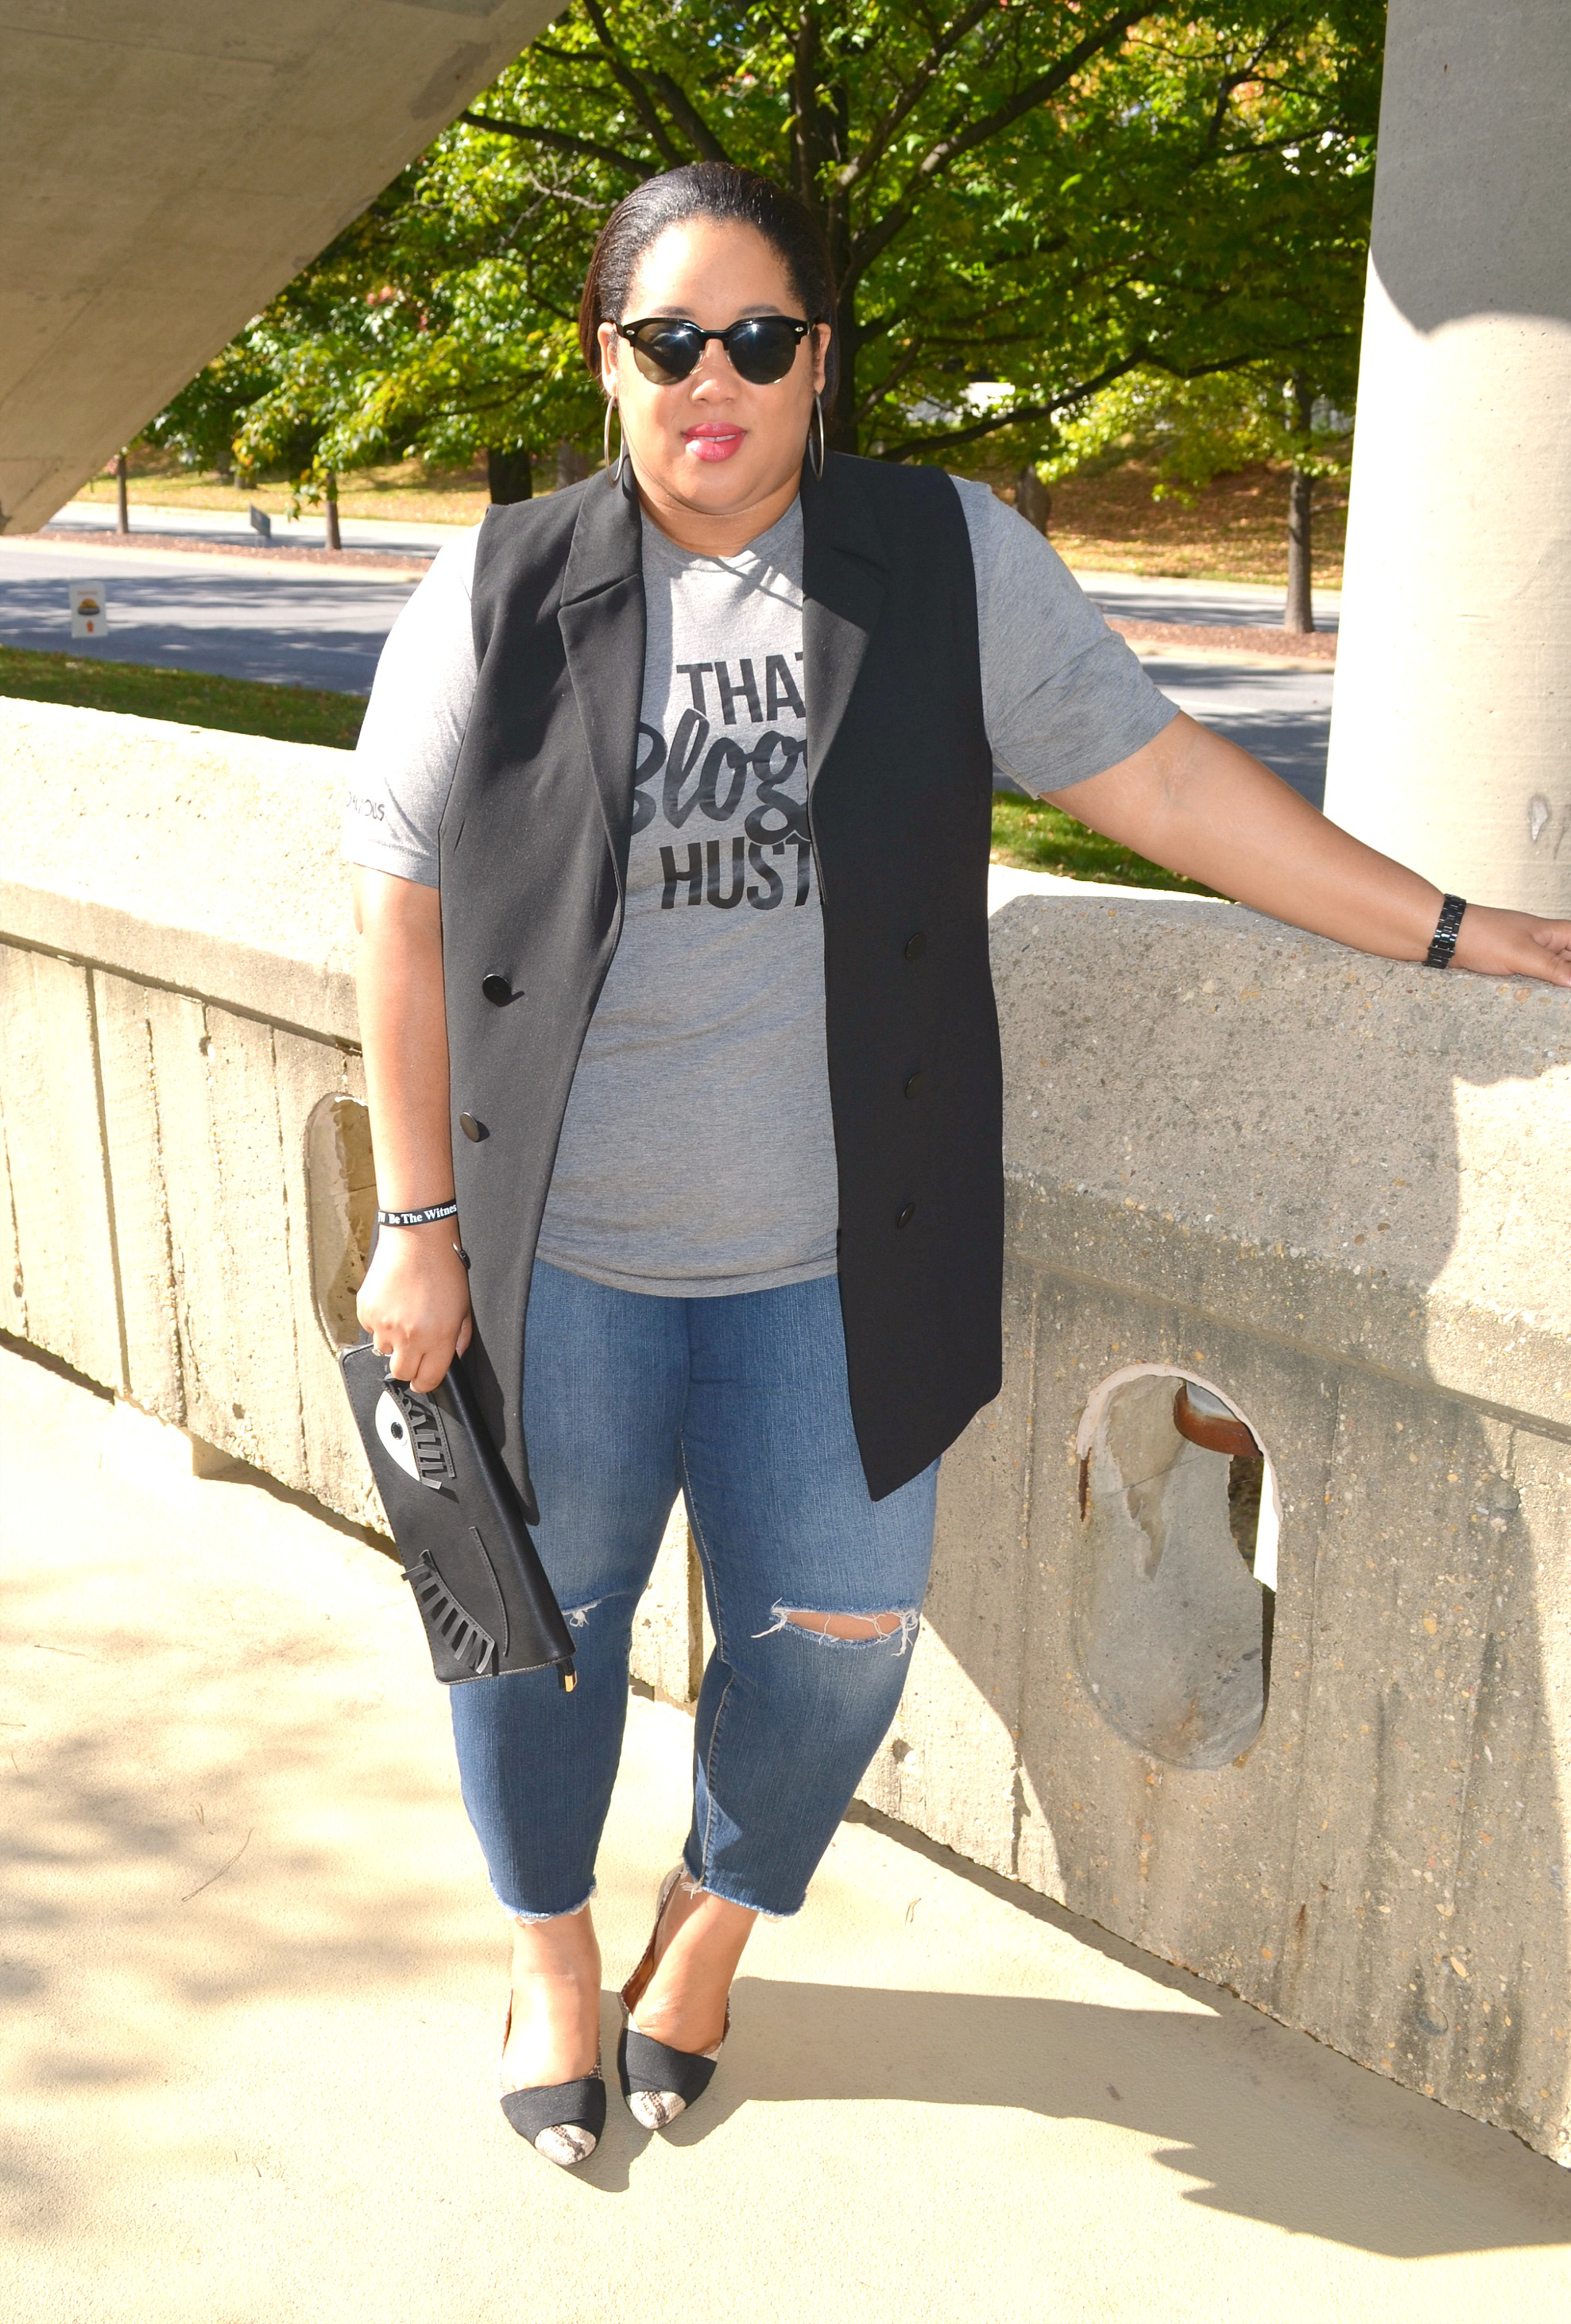 Casual Wear - Jeans and Graphic Tees